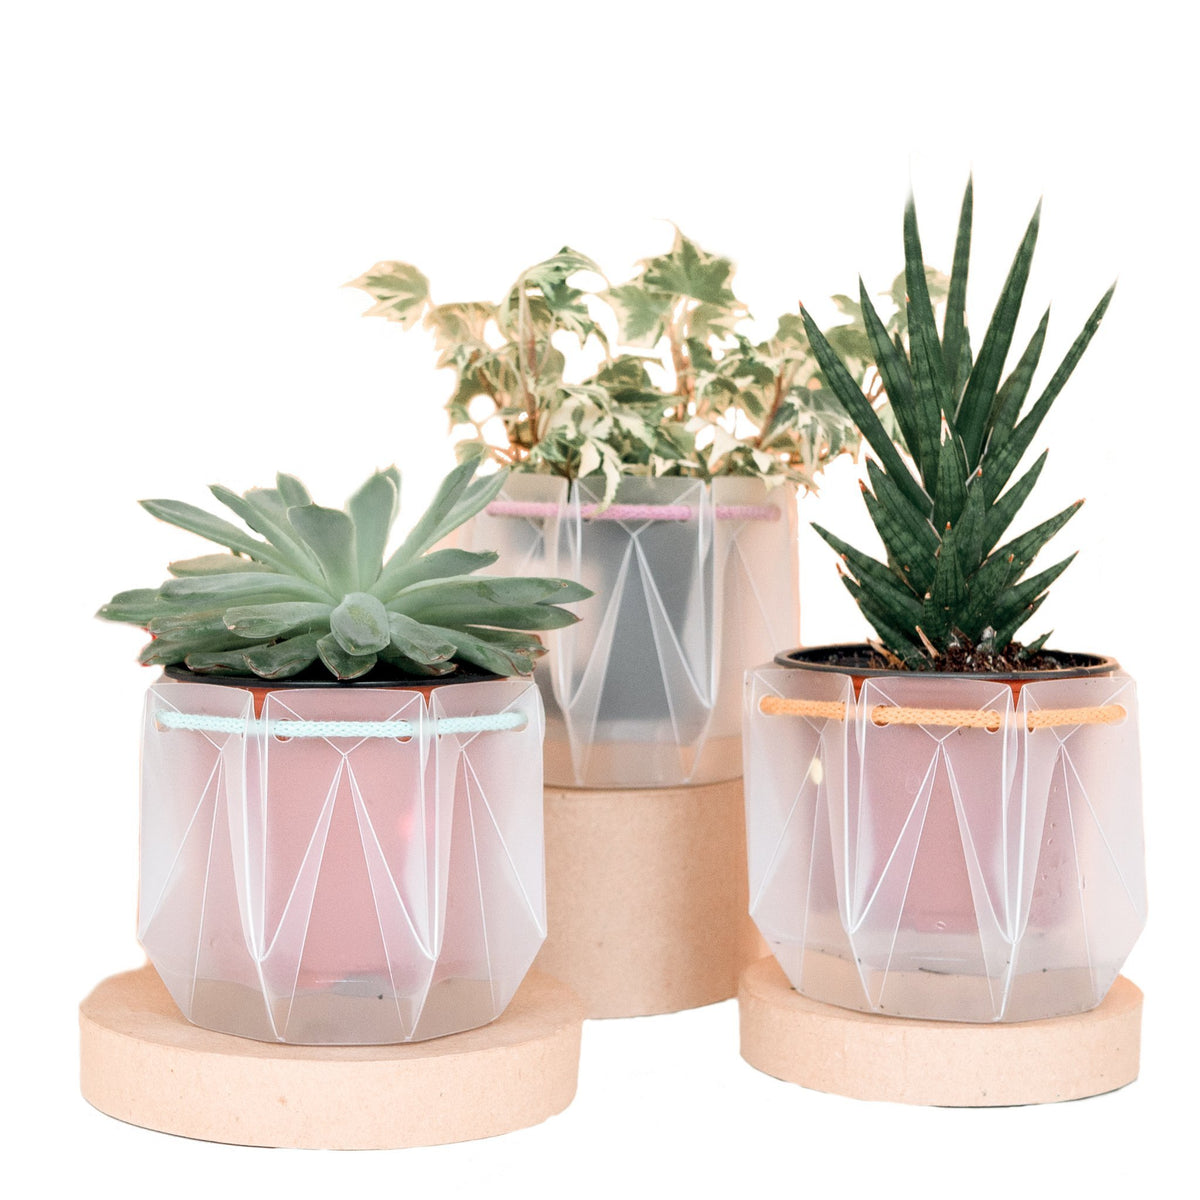 Self-watering origami planter - Scandiscapes